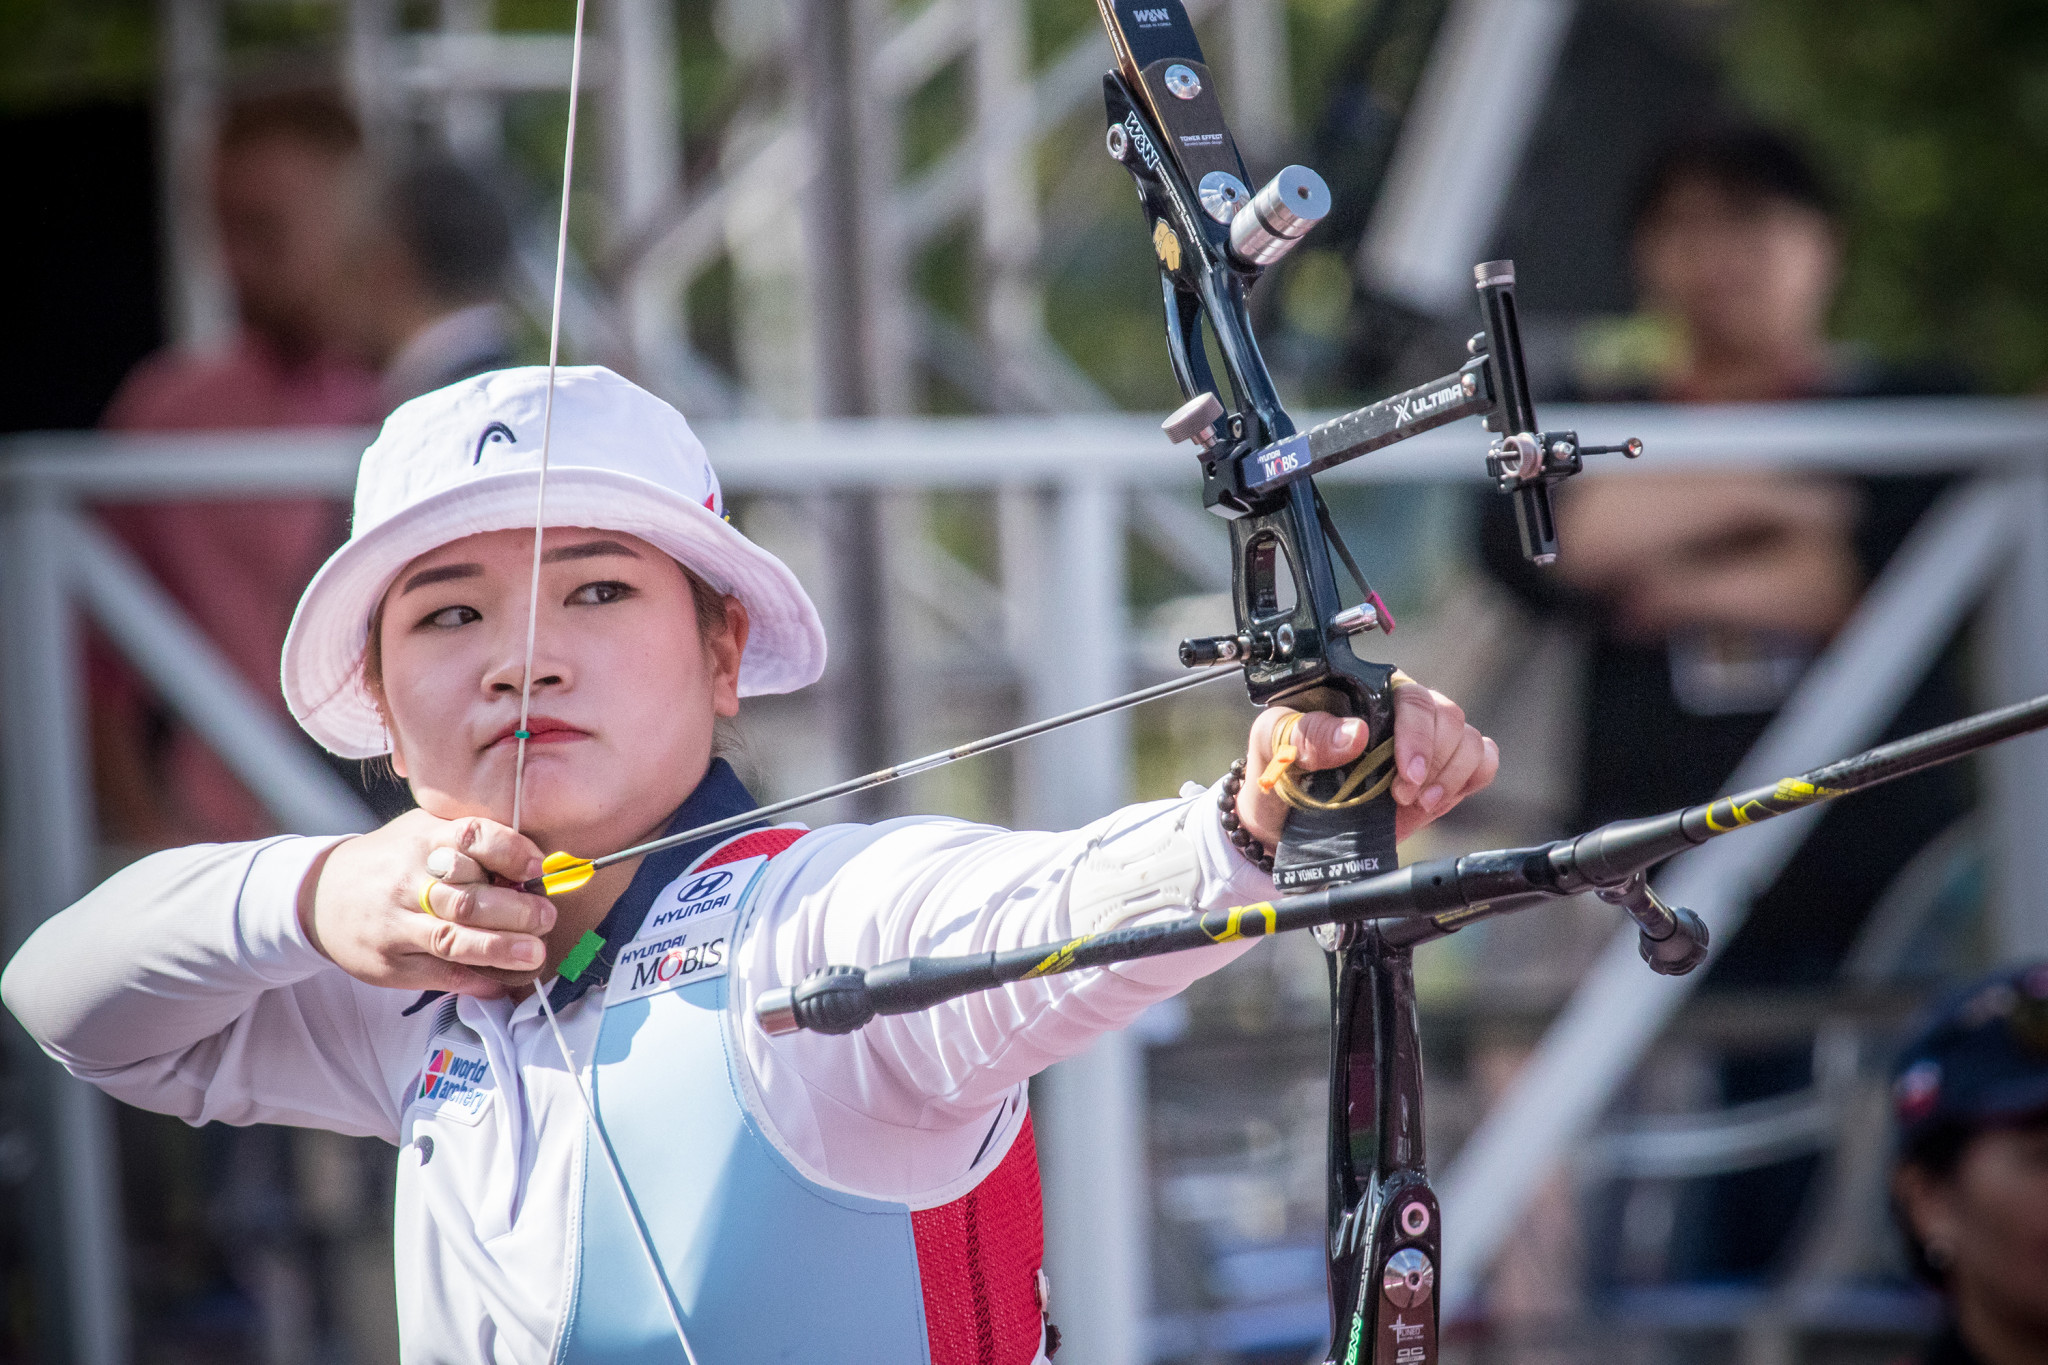 Smaller international competitions will still be permitted for archers ©Getty Images